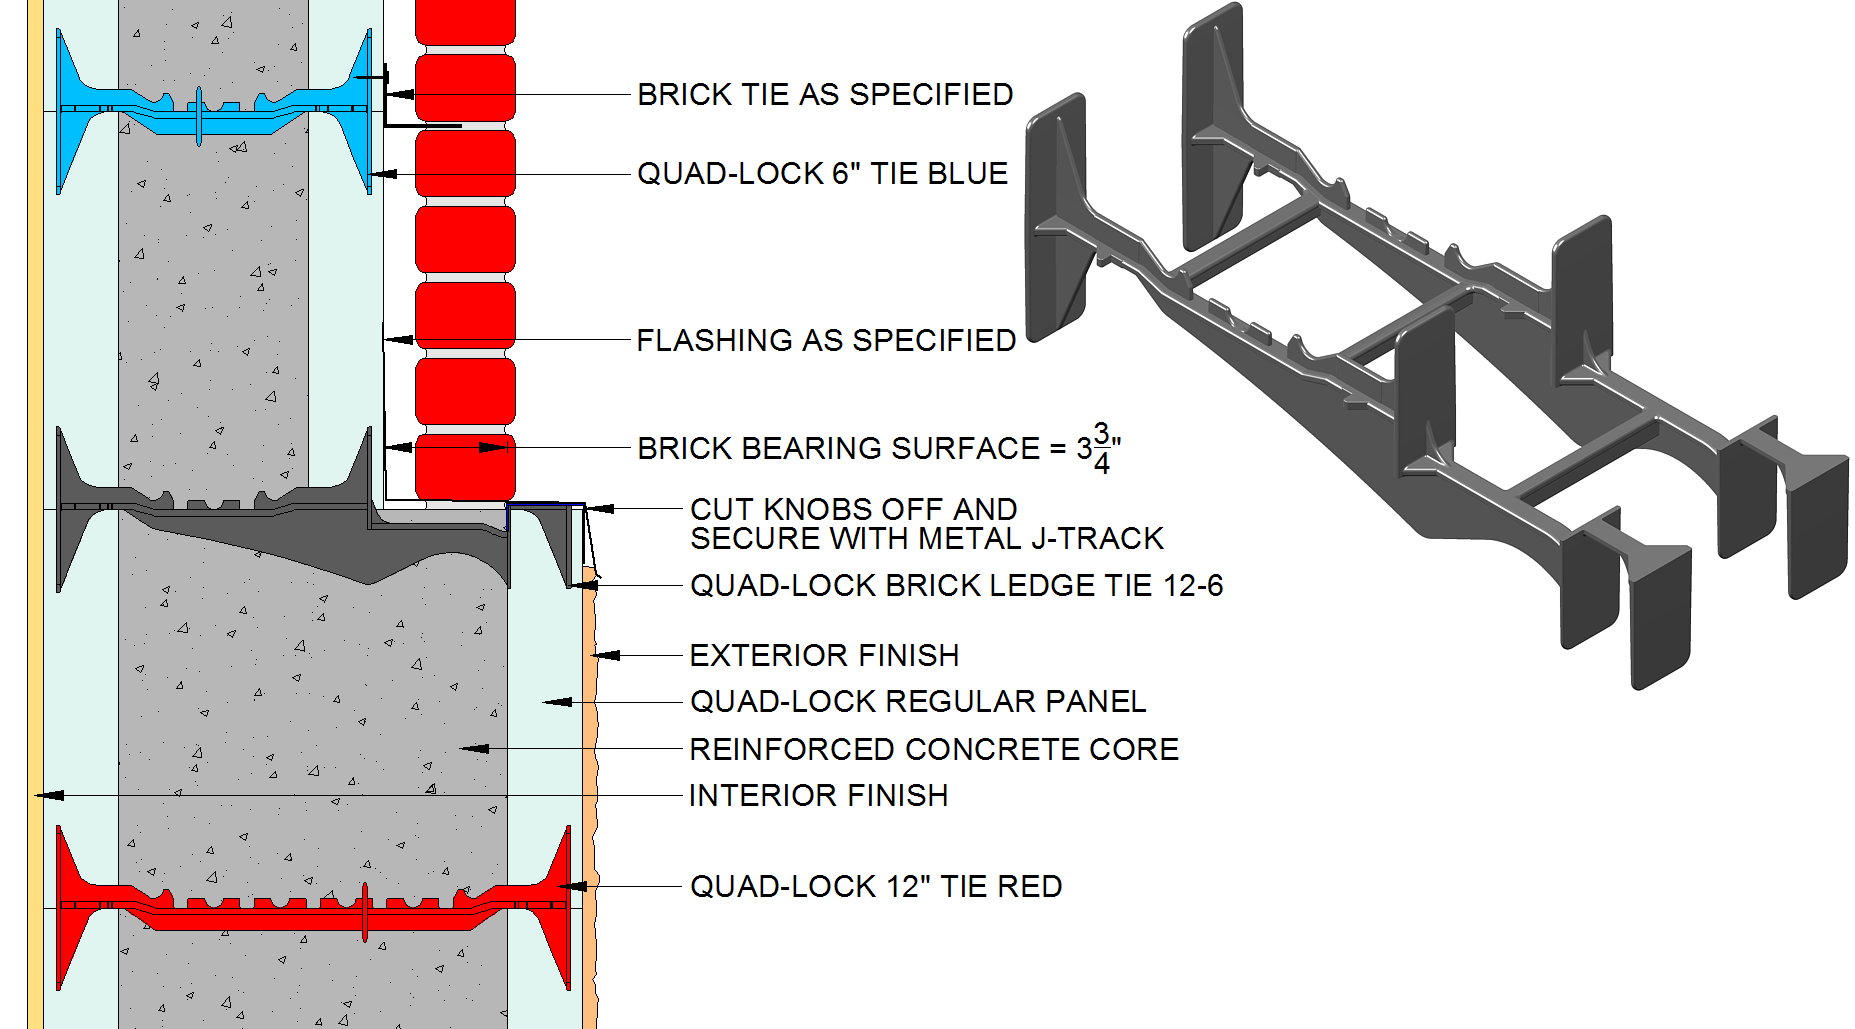 Quad lock icf ties for insulated concrete forms for Best icf block